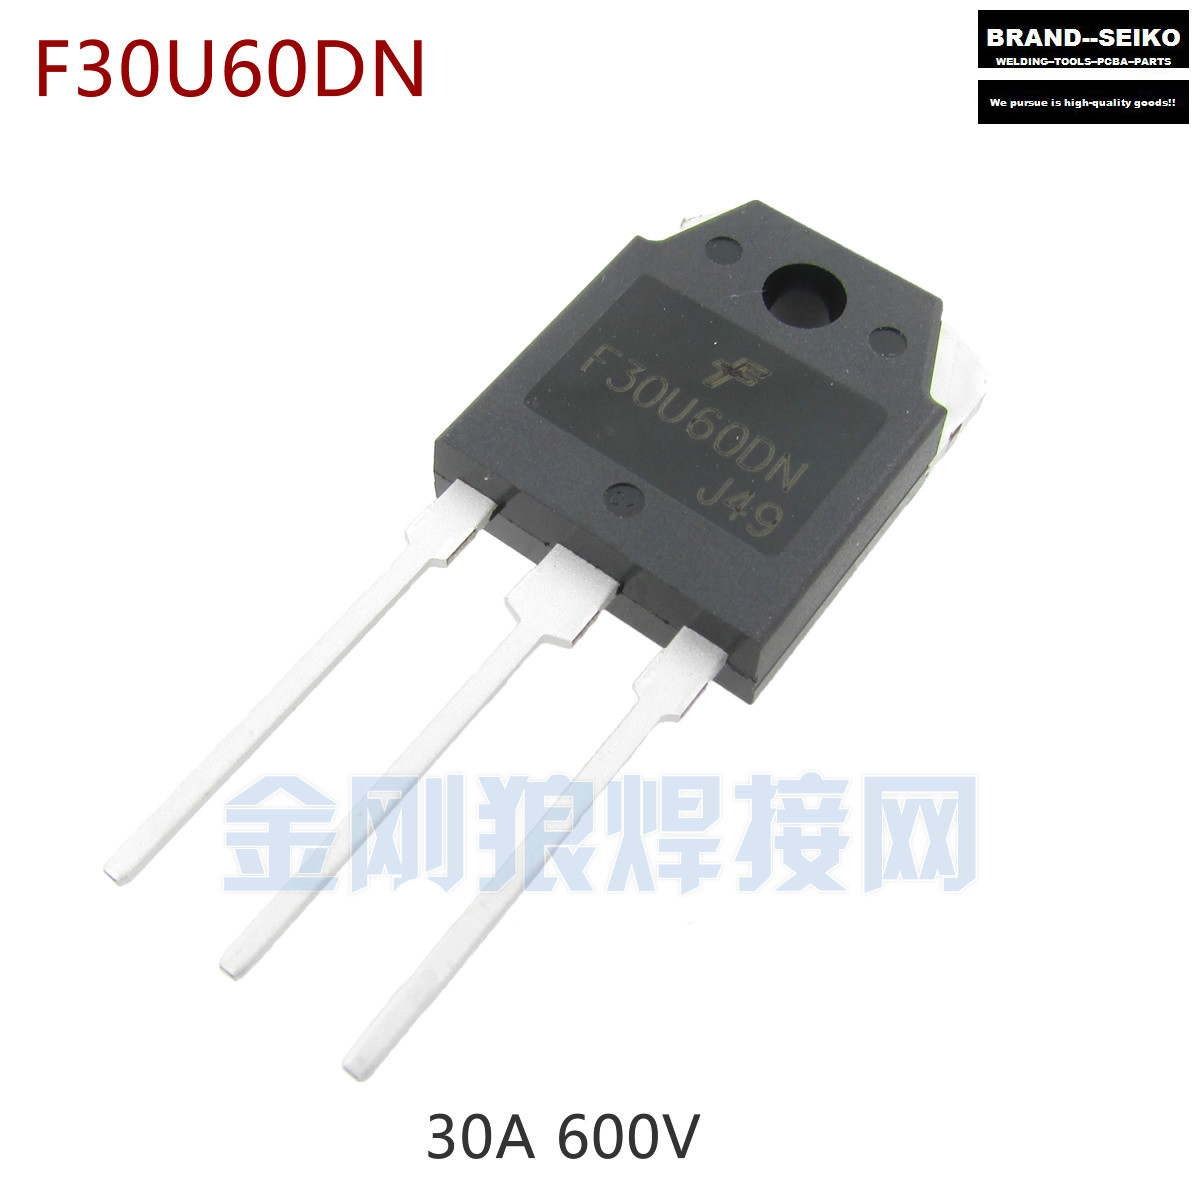 ФОТО 10PCS/LOT Inverter Welding Machine Commonly Used Components 30a 600v F30u60dn Fast Recovery Common Cathode Dual Diode